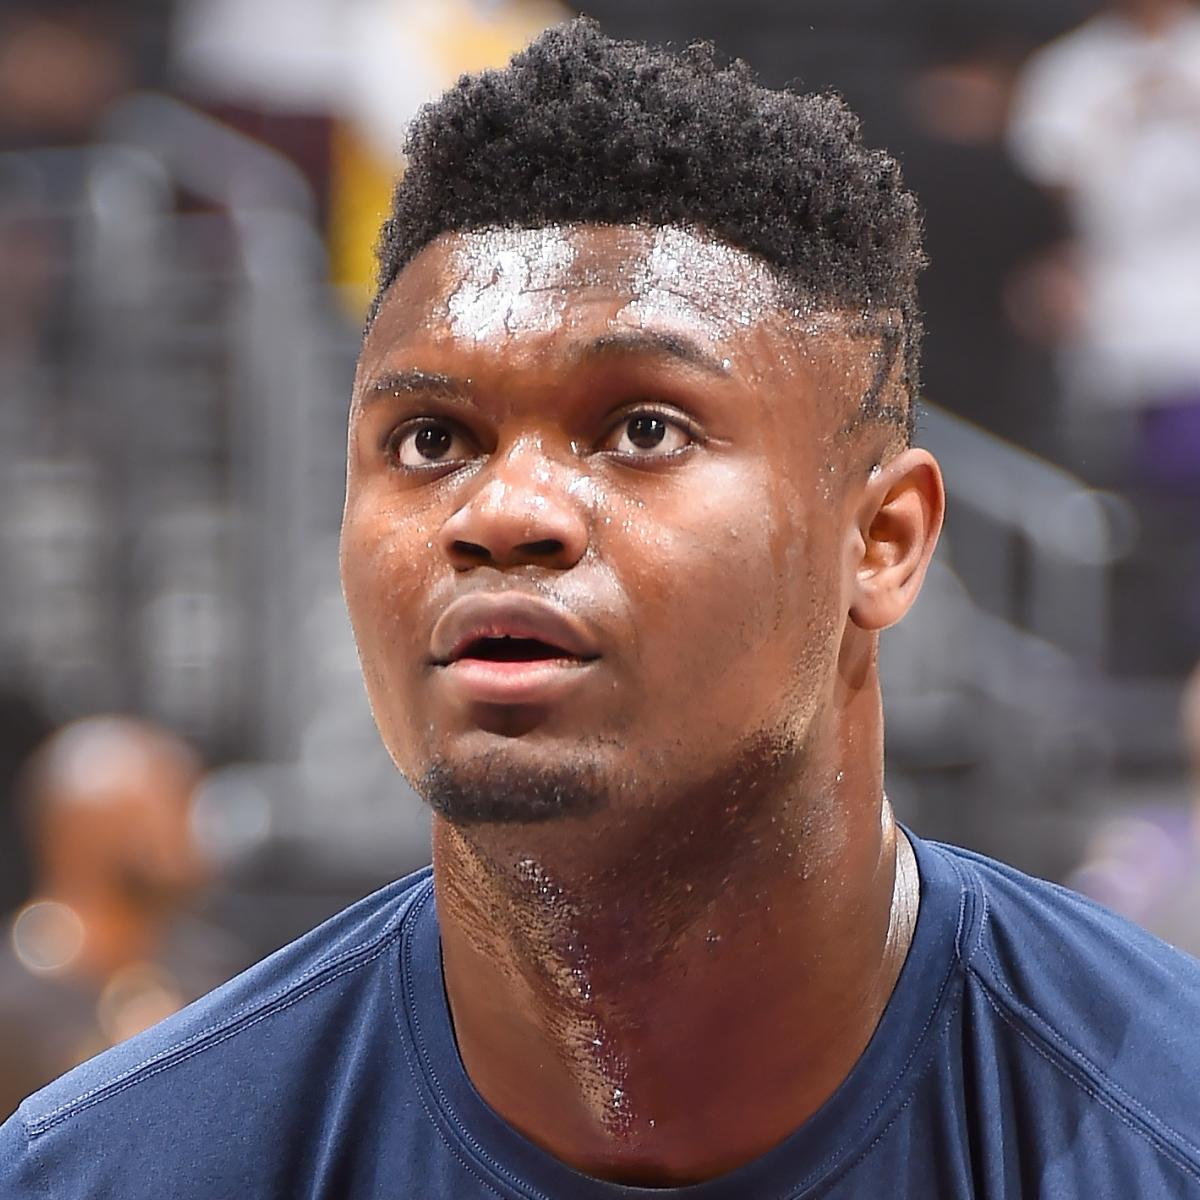 Zion Williamson Gifted Pelicans Teammates Custom Mardi Gras Beats Headphones